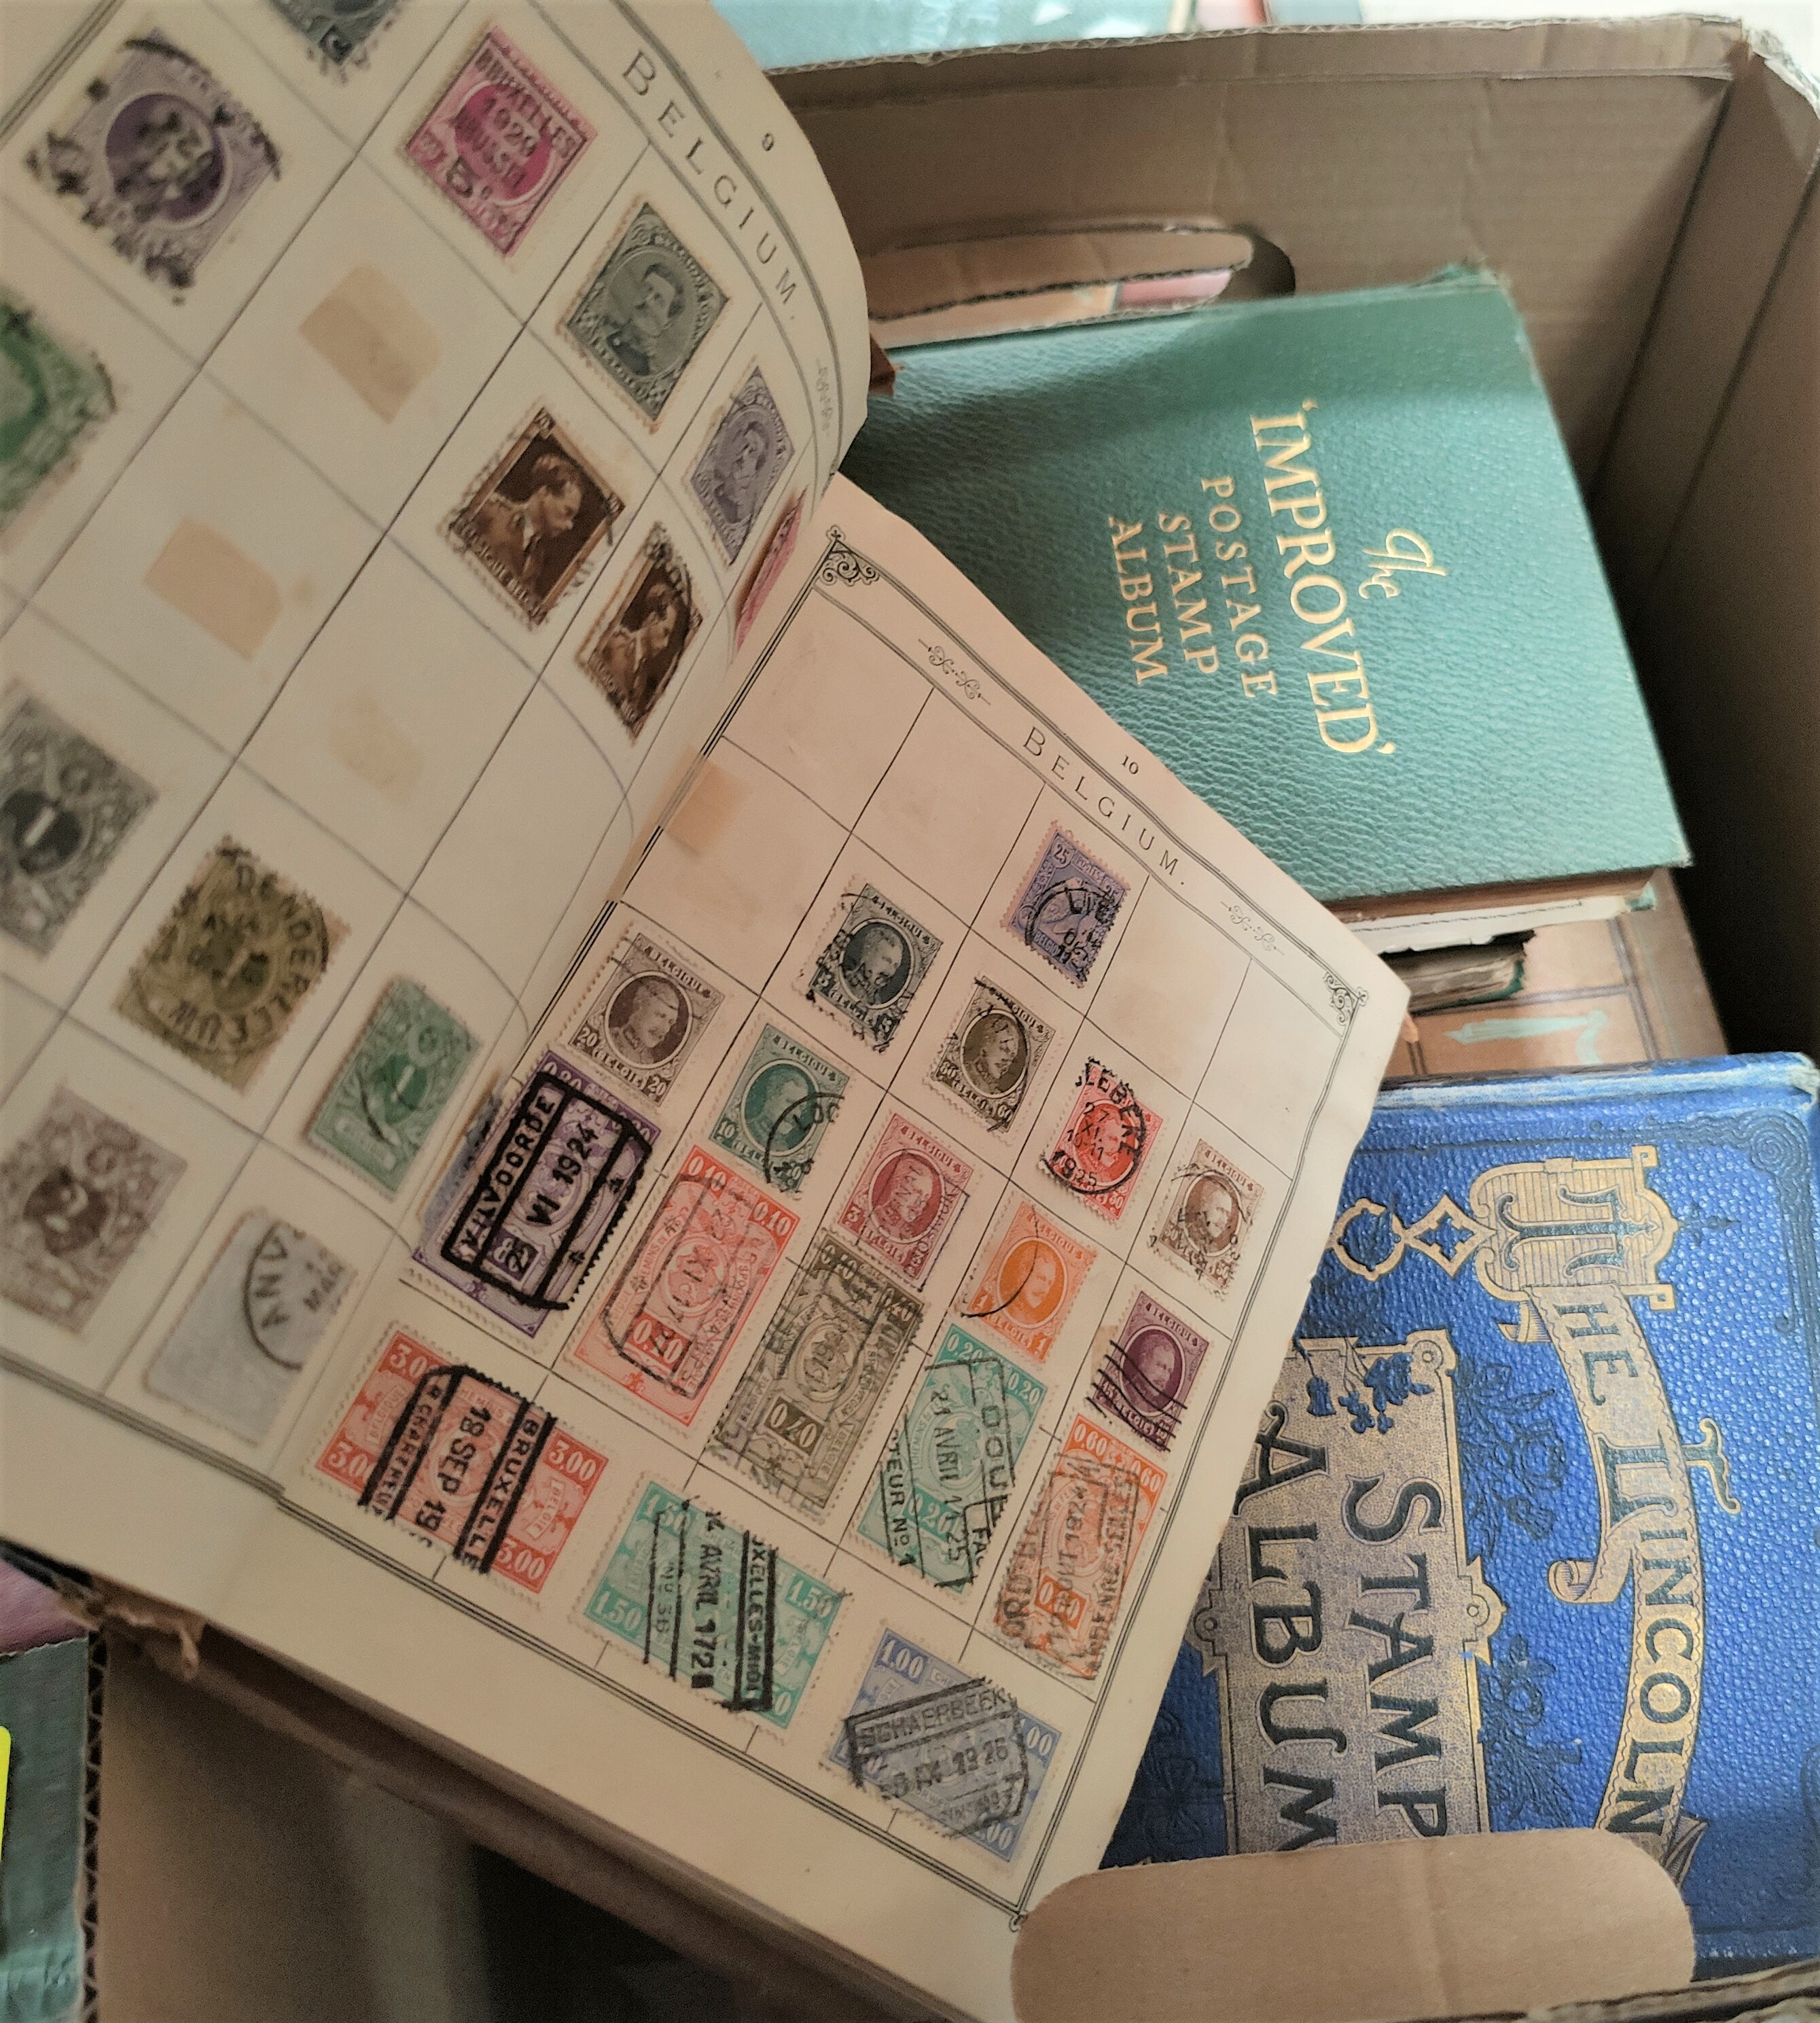 A quantity of older stamp albums